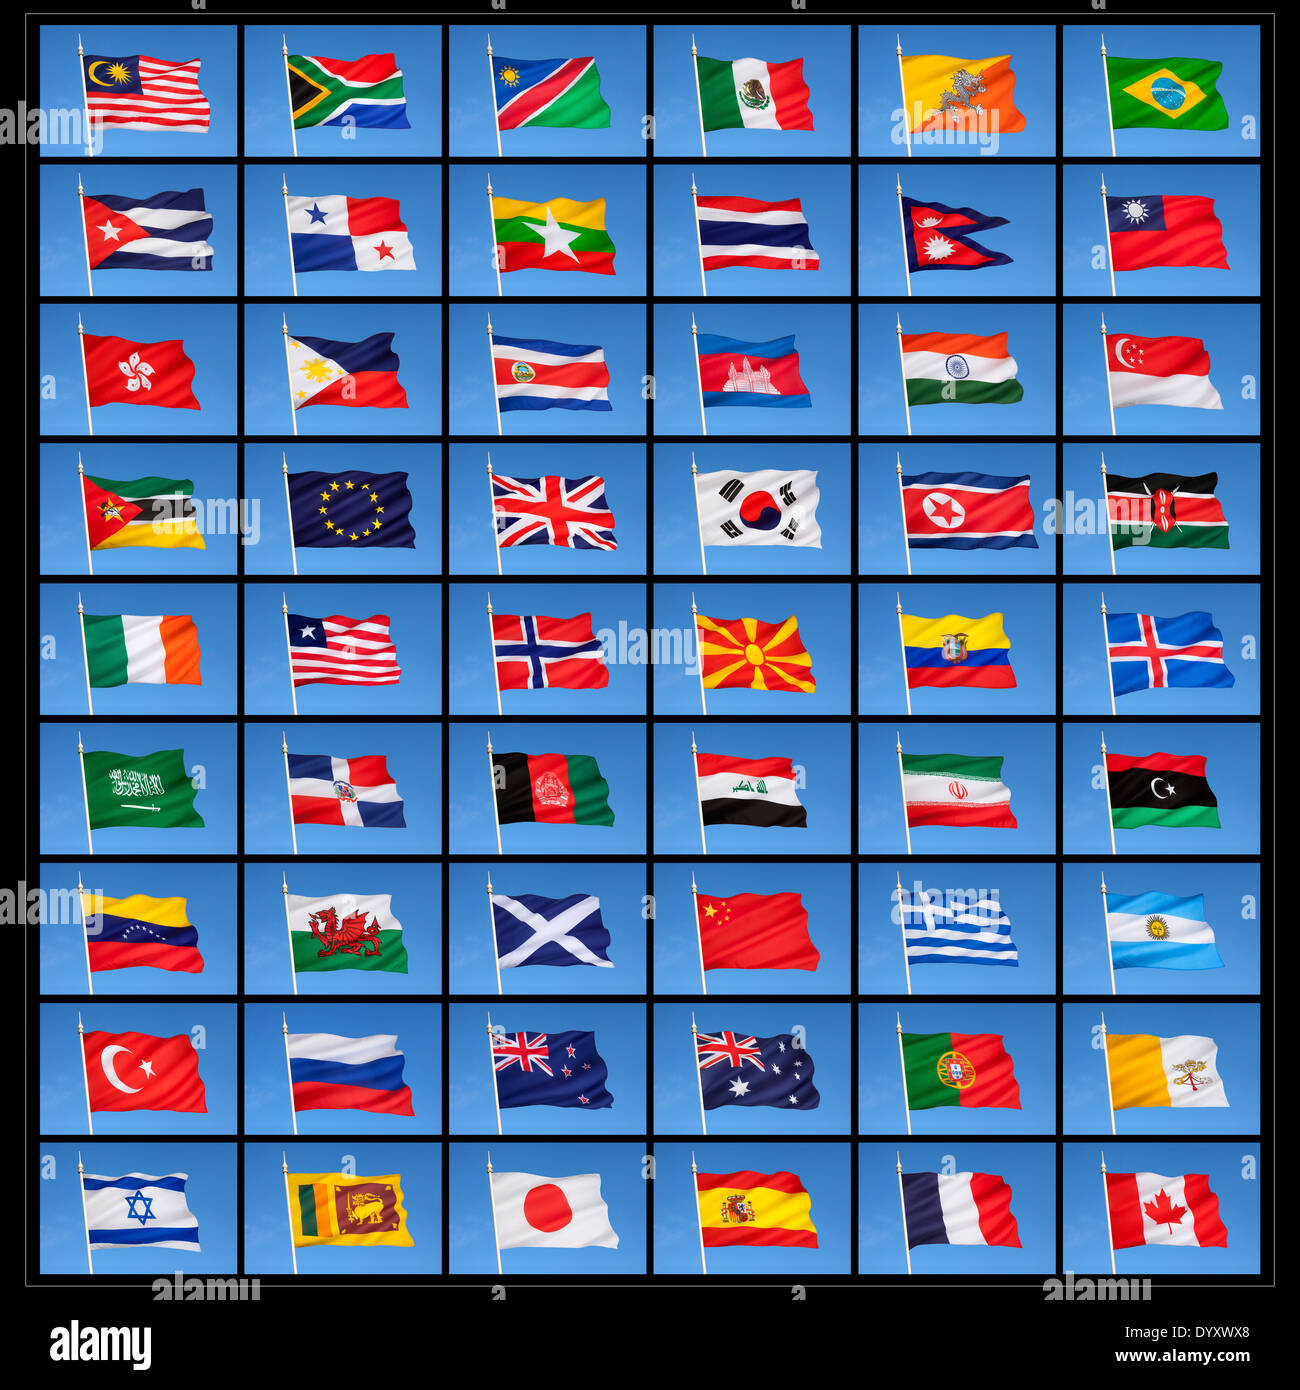 A collection of national flags from countries around the world. - Stock Image